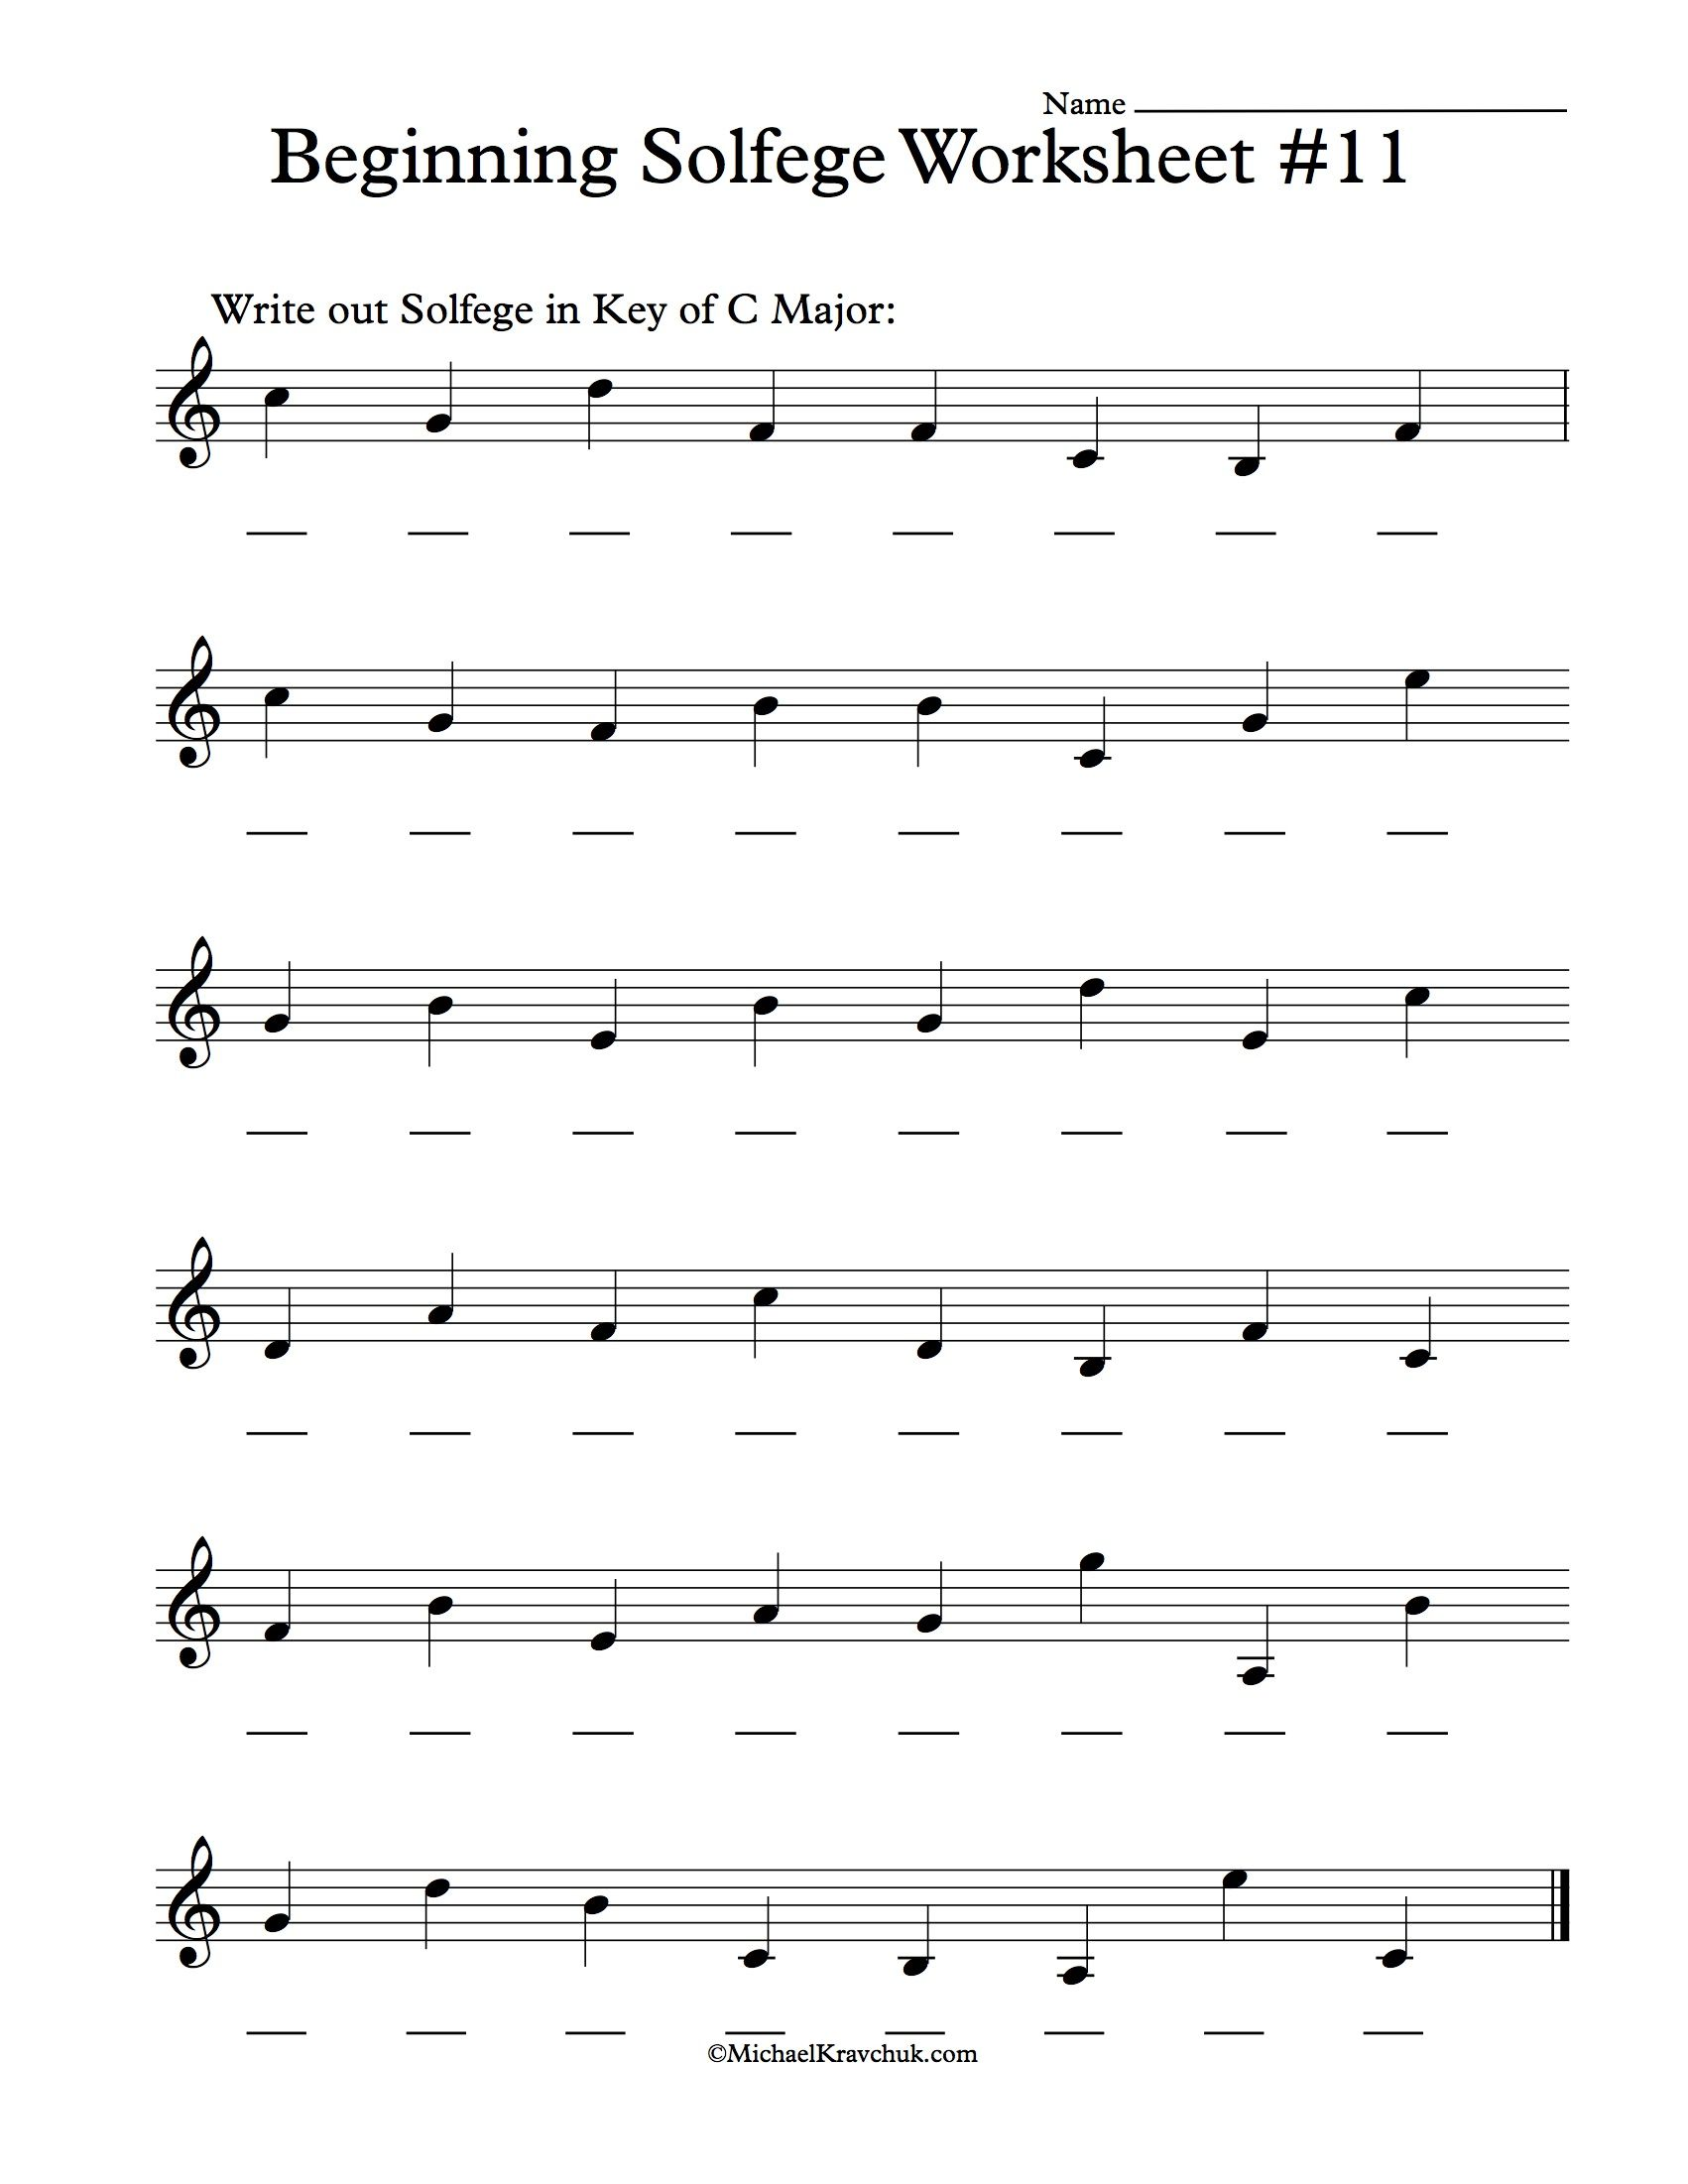 Beginning Solfege Worksheet 11 For Classroom